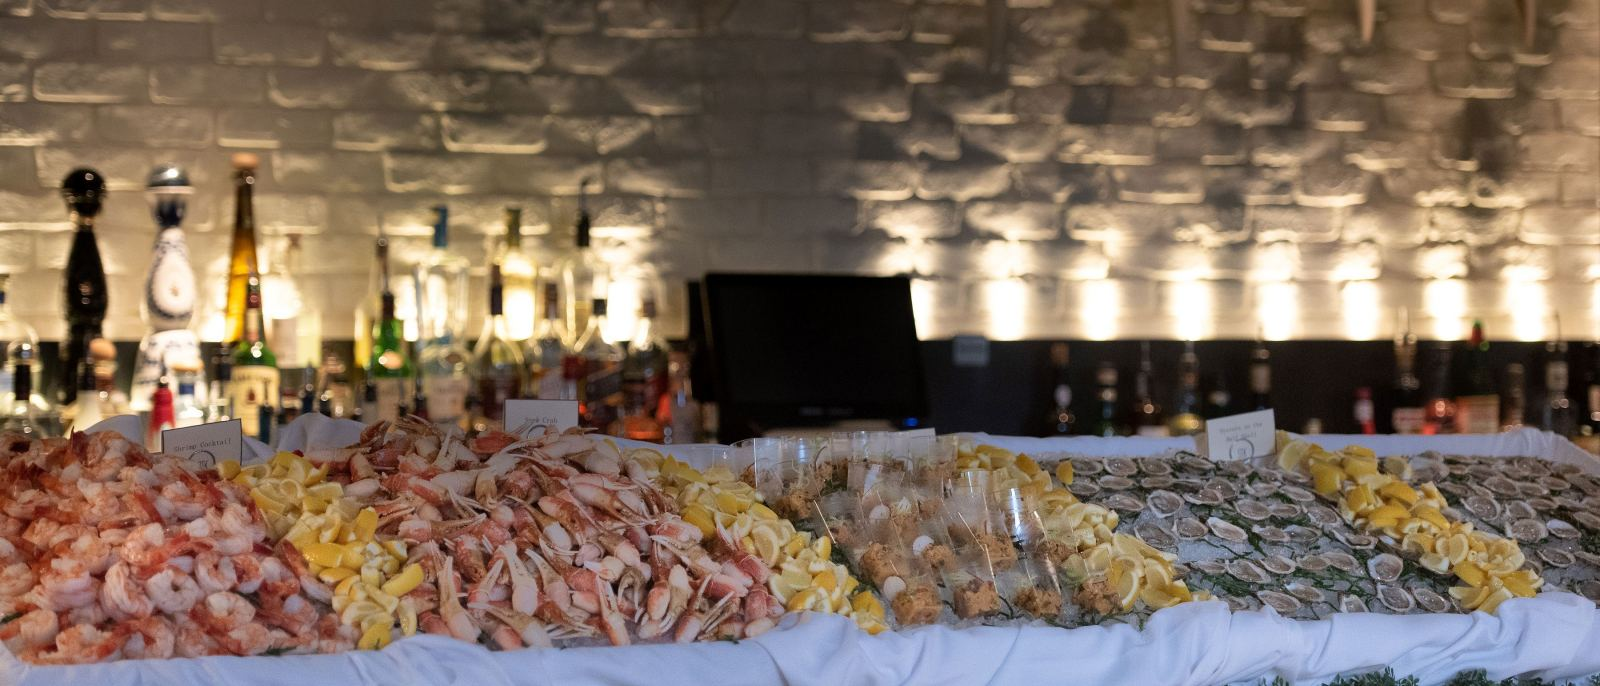 STK Steakhouse buffet raw bar